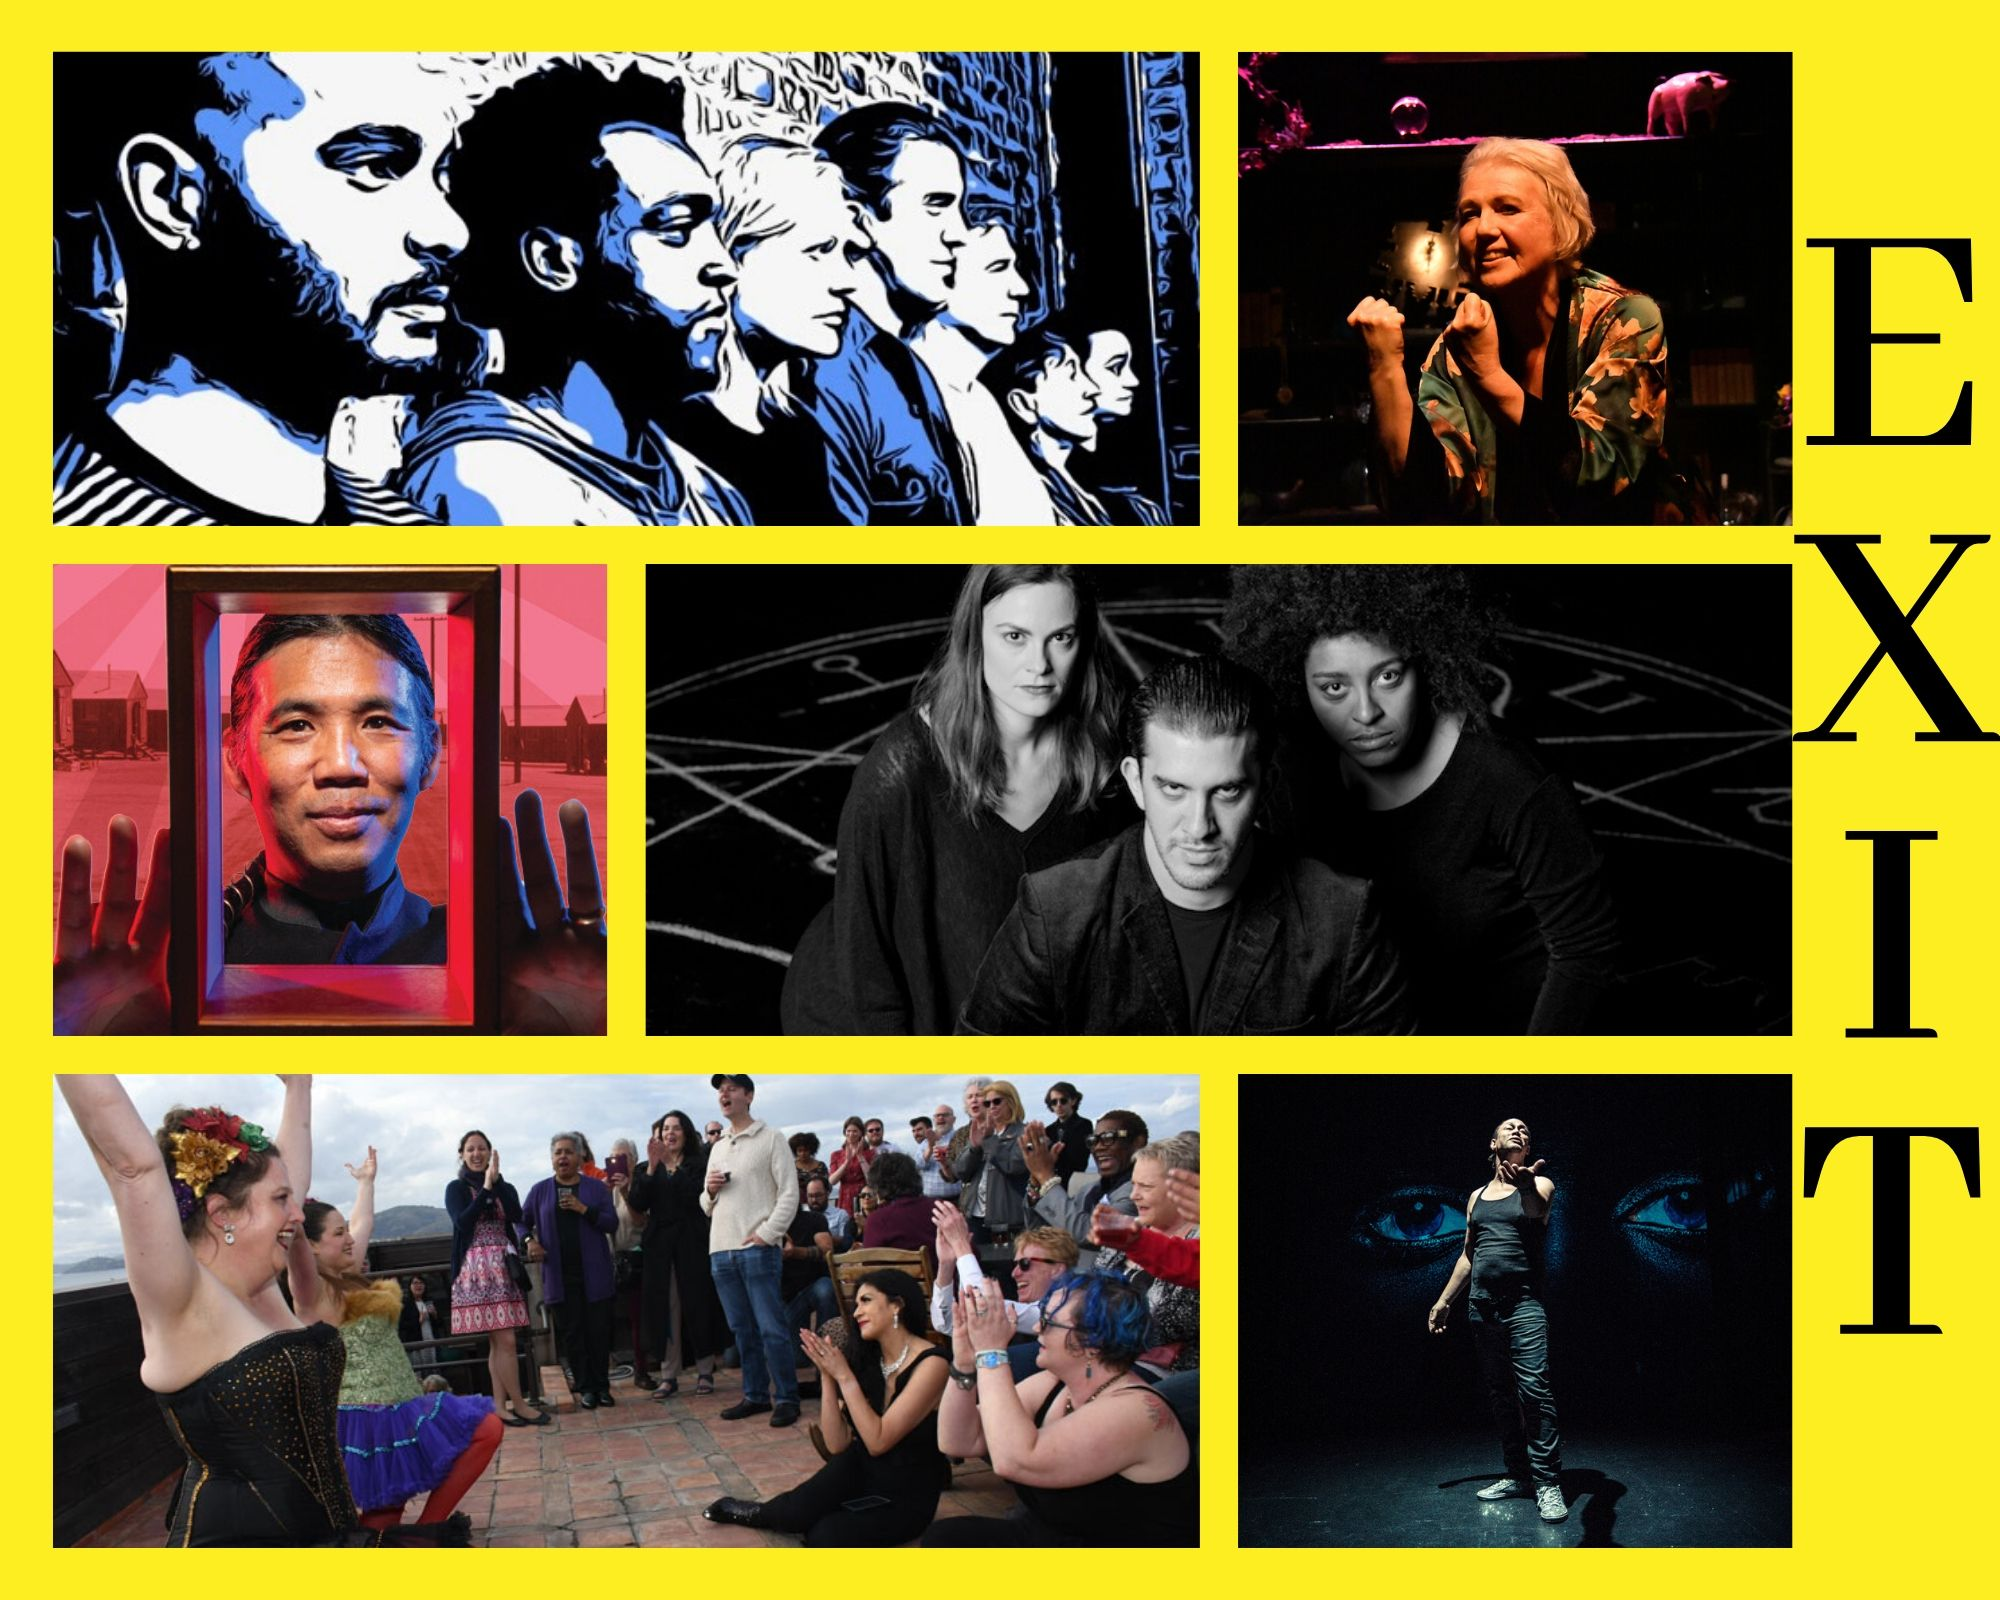 A collage of images including a graphic of seven actors against a brick wall, performer christina augello in a flowered silk robe, magician David Hirata looking through a box, a trio of sinister performers standing in front of a chalk pentagram, can-can dancers performing on a rooftop, and a solo performer on a theatre stage against a backdrop of watching eyes.